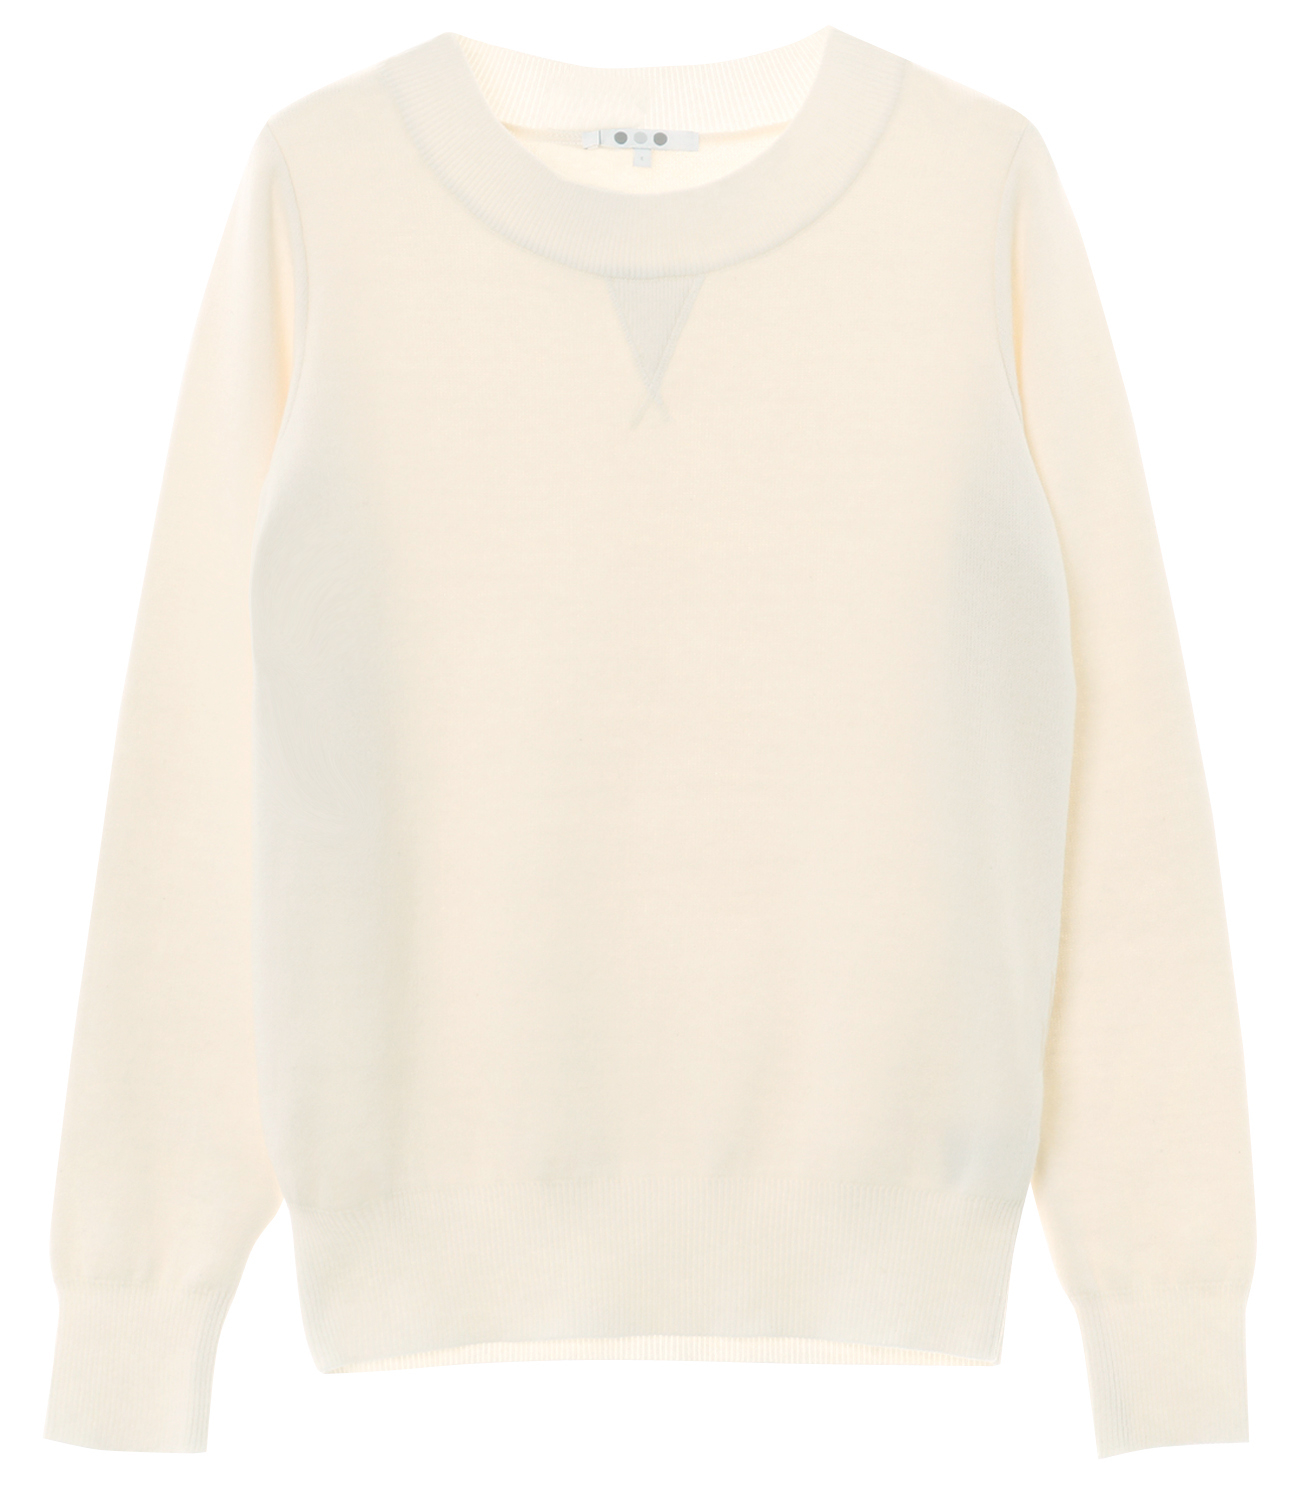 warm cotton l/s crew neck 詳細画像 ivory 1